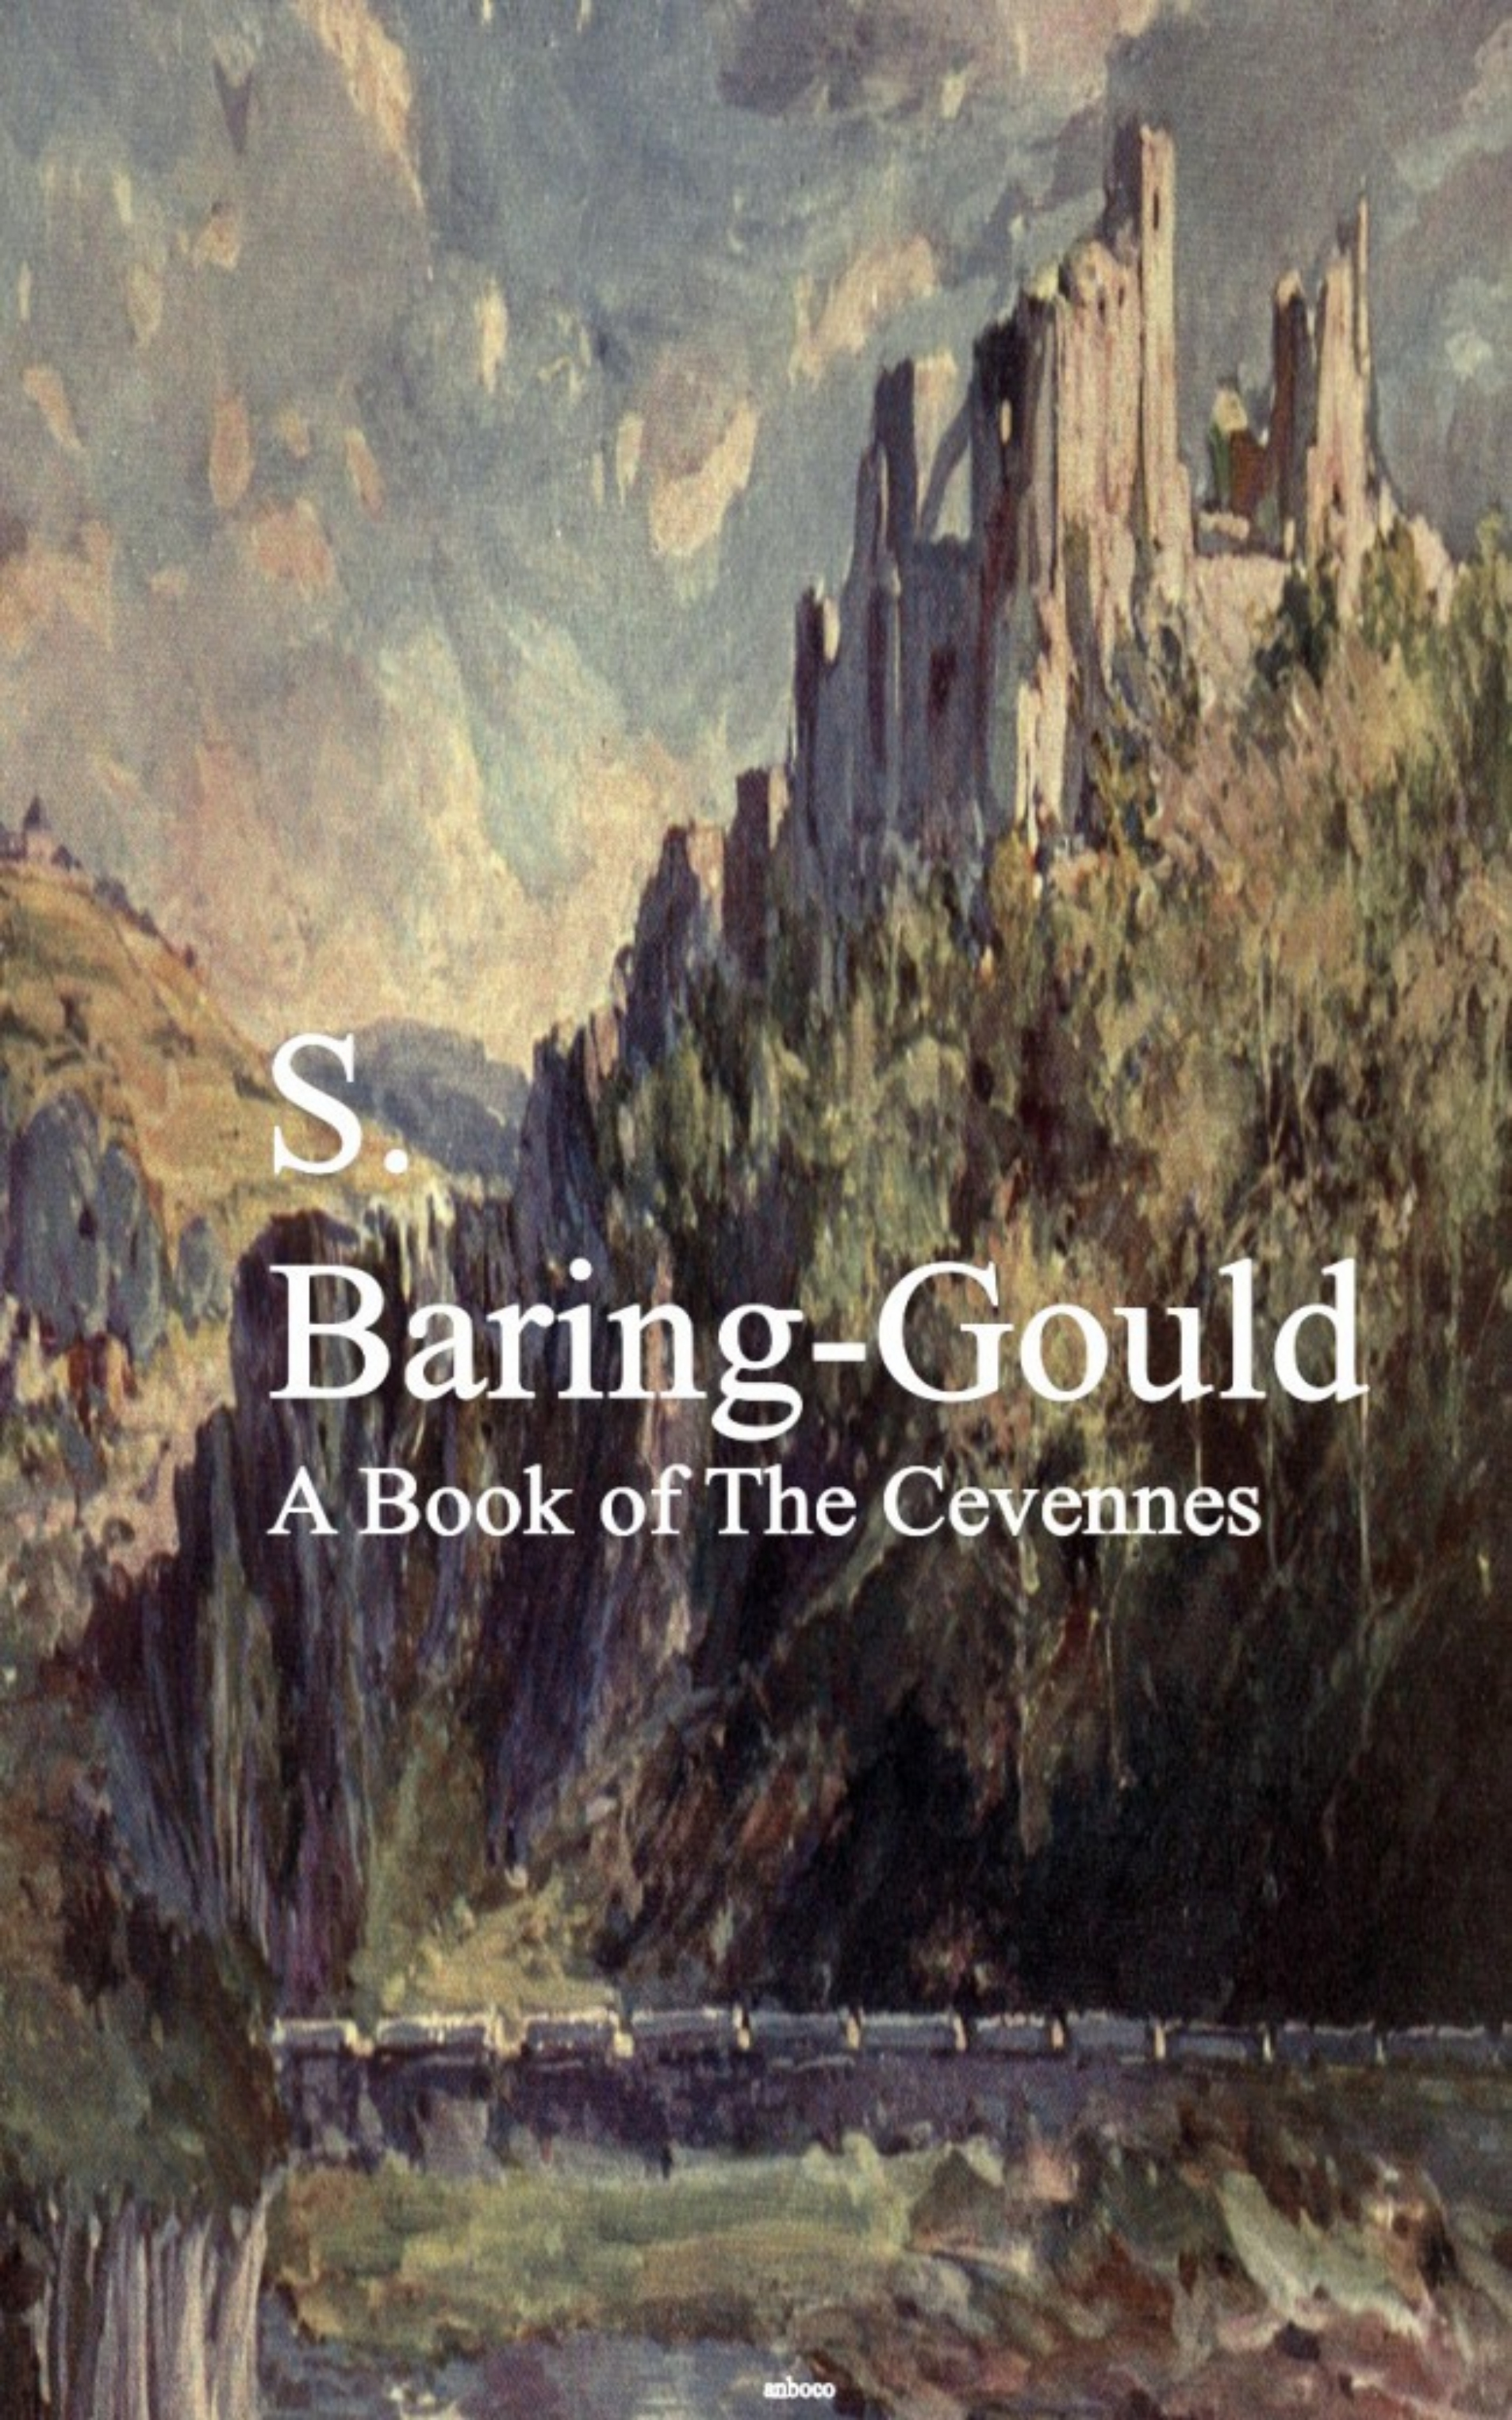 S. Baring-Gould A Book of The Cevennes baring gould sabine a book of ghosts